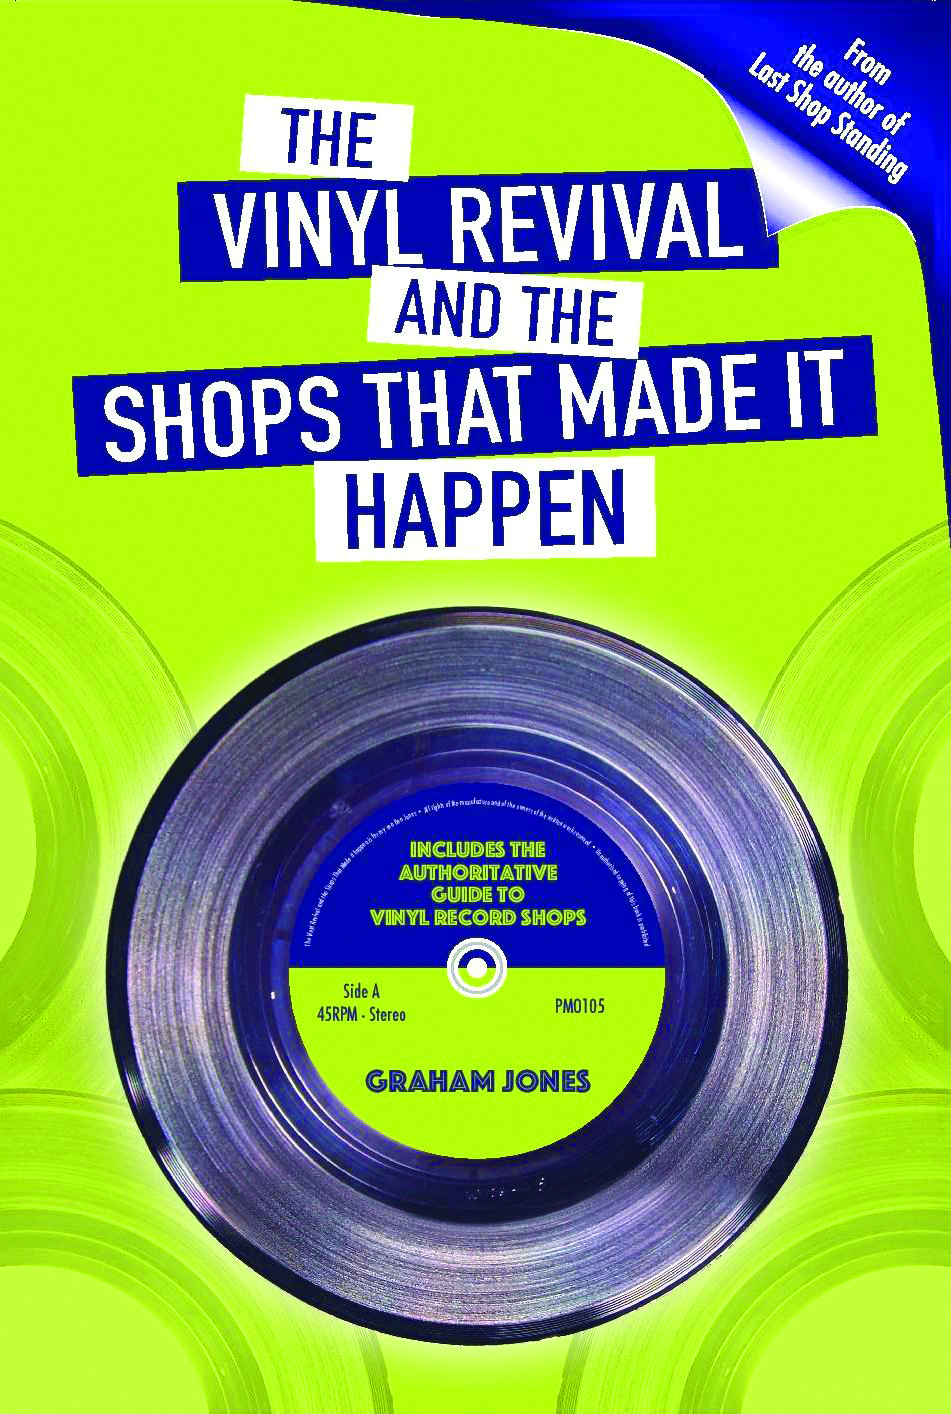 Competition: Win a copy of The Vinyl Revival by Graham Jones!